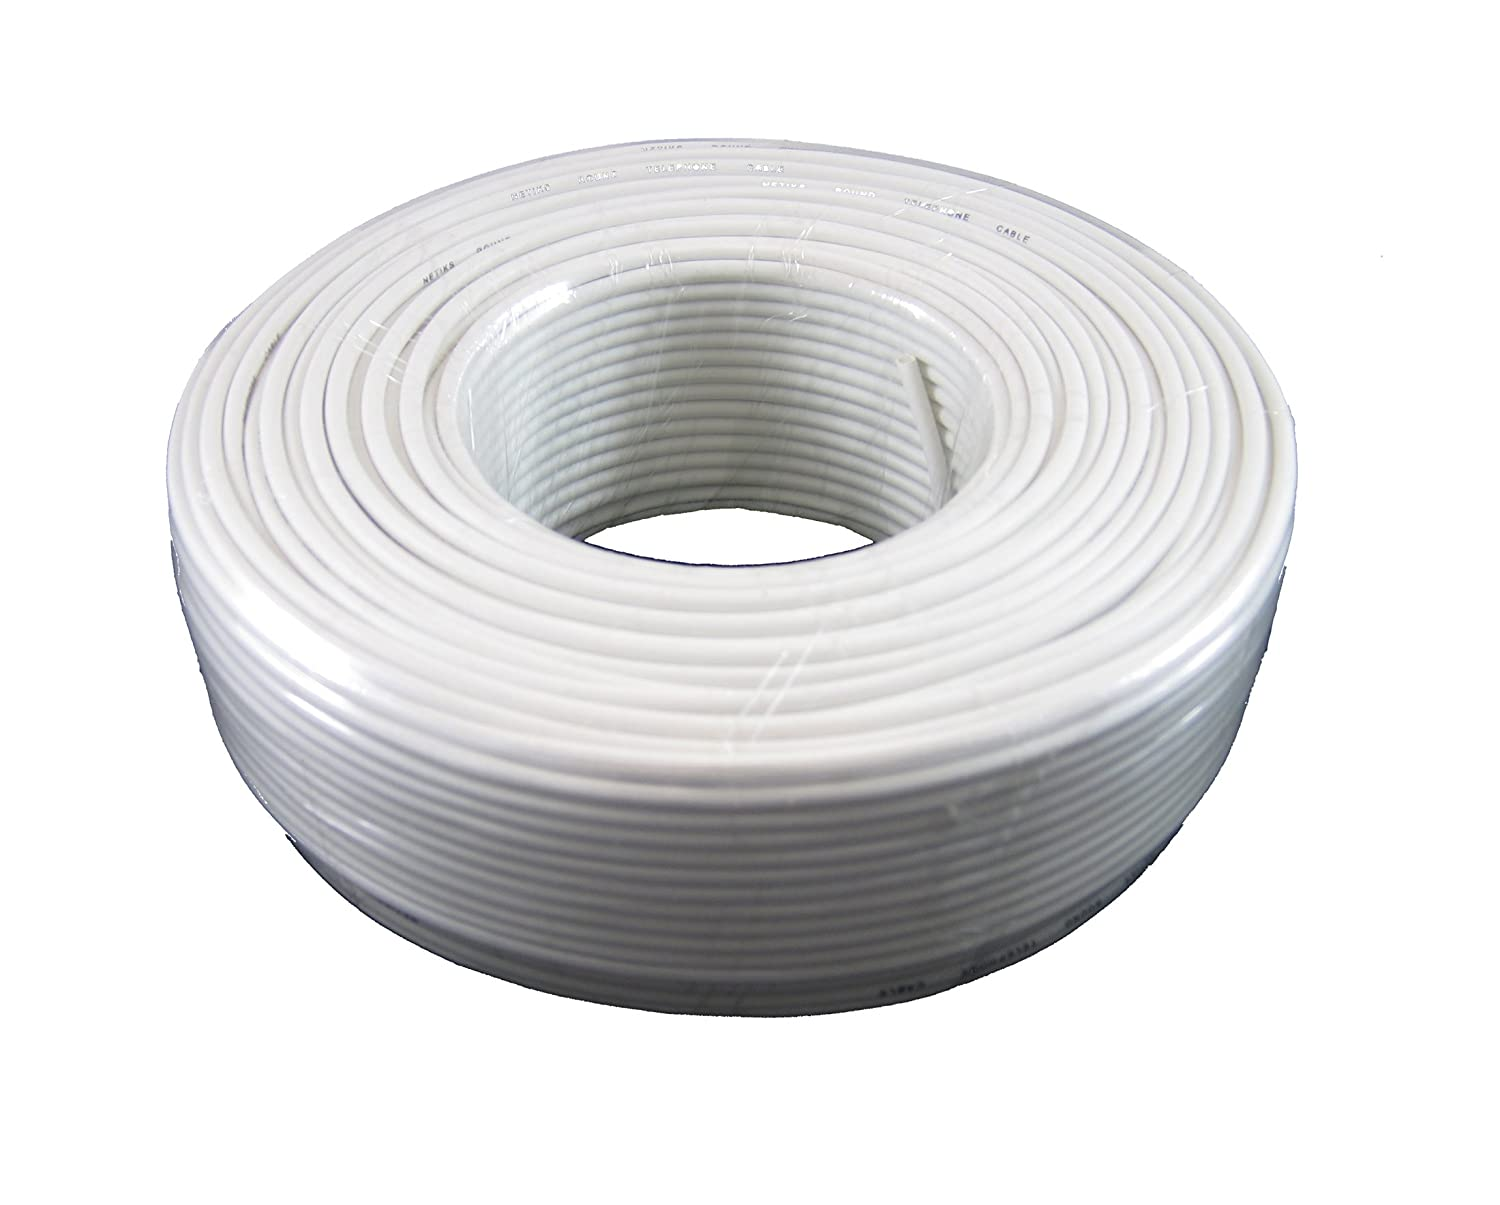 Amazon.com: Phone Cable 300ft Rounded White Roll (100 M - 328 ft ...